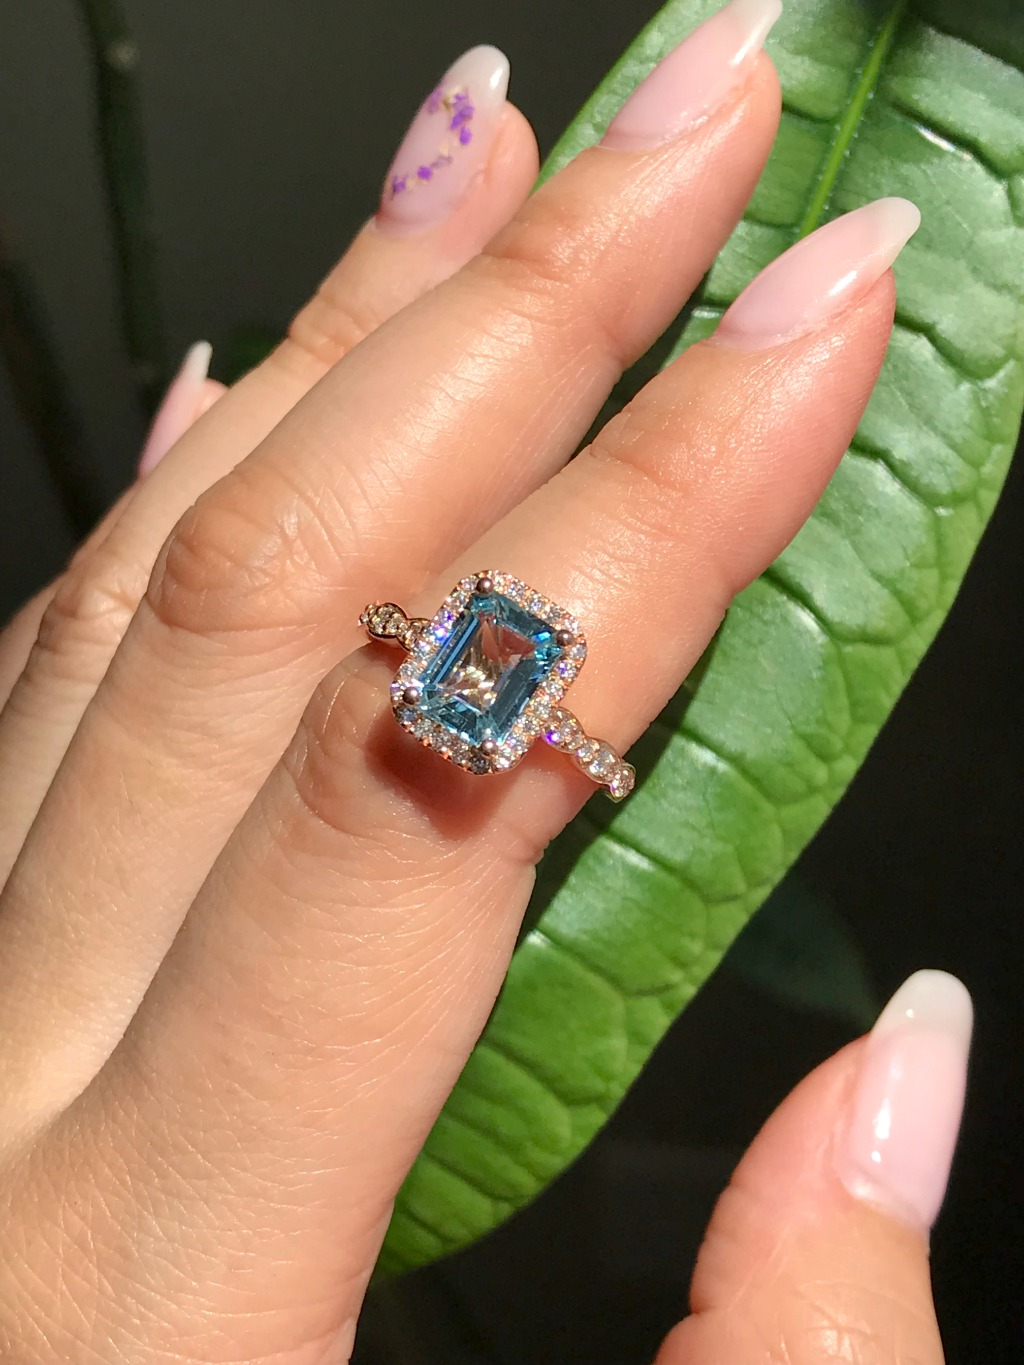 Our new collection of Emerald Cuts has a new blue addition! Scalloped Halo Emerald Cut Aquamarine Engagement Ring looks gorgeous basking